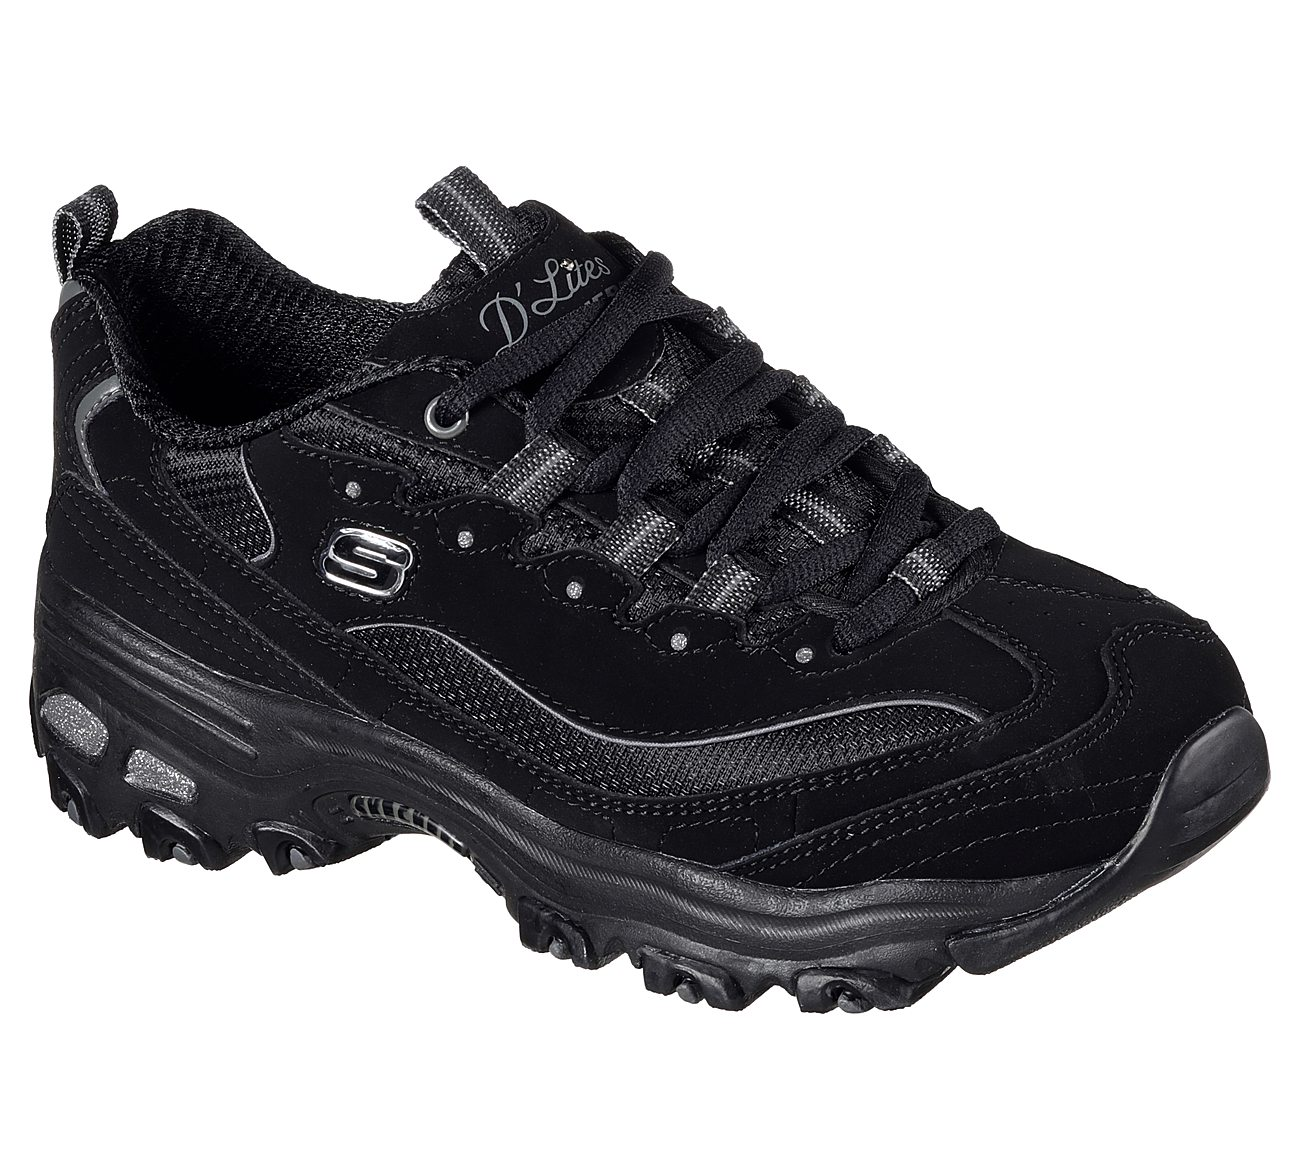 light up sketchers size 11 mens